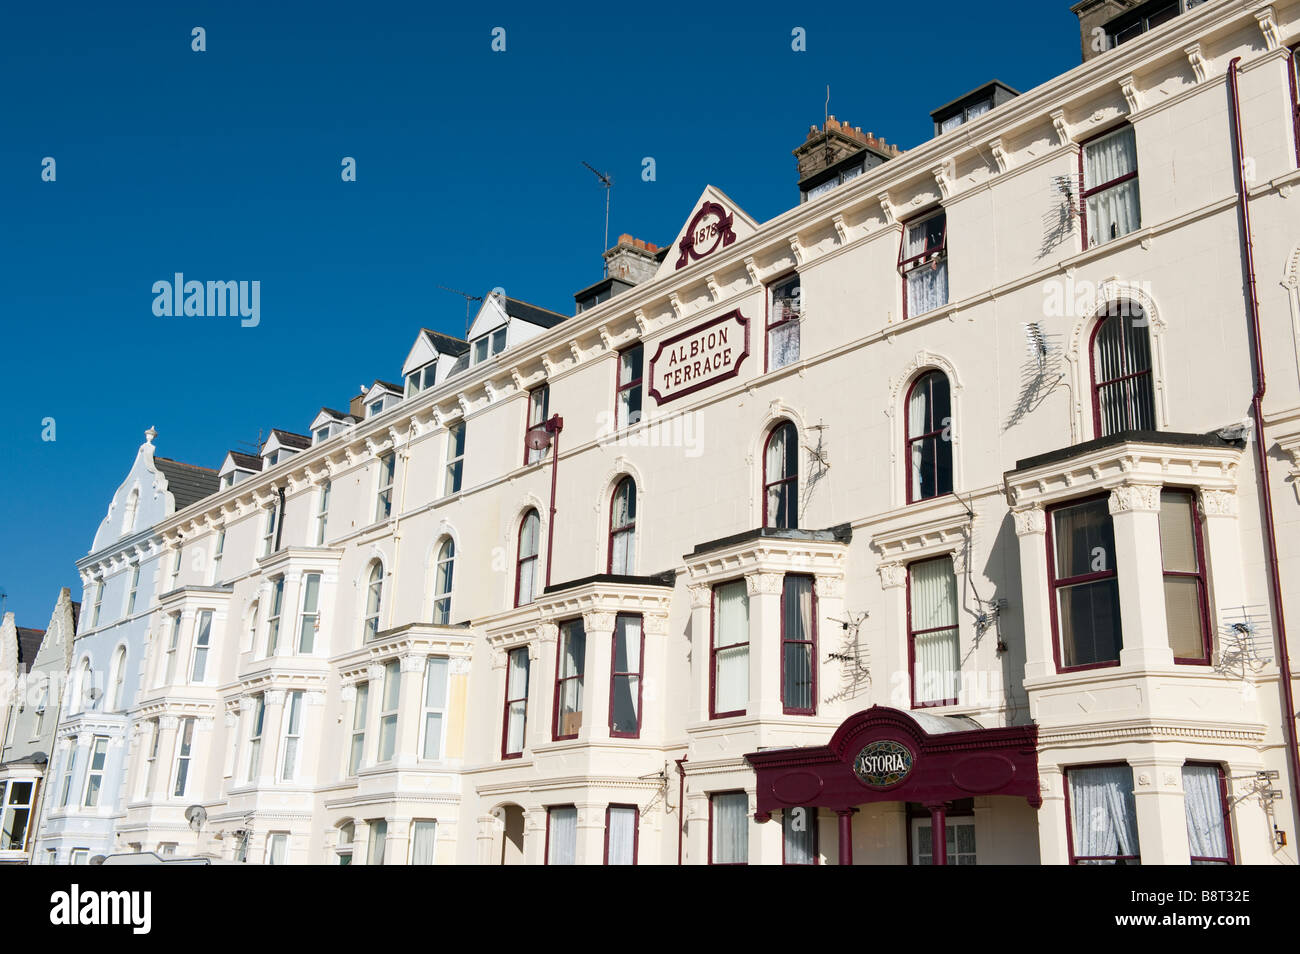 Yorkshire Terrace: Bridlington Building Stock Photos & Bridlington Building